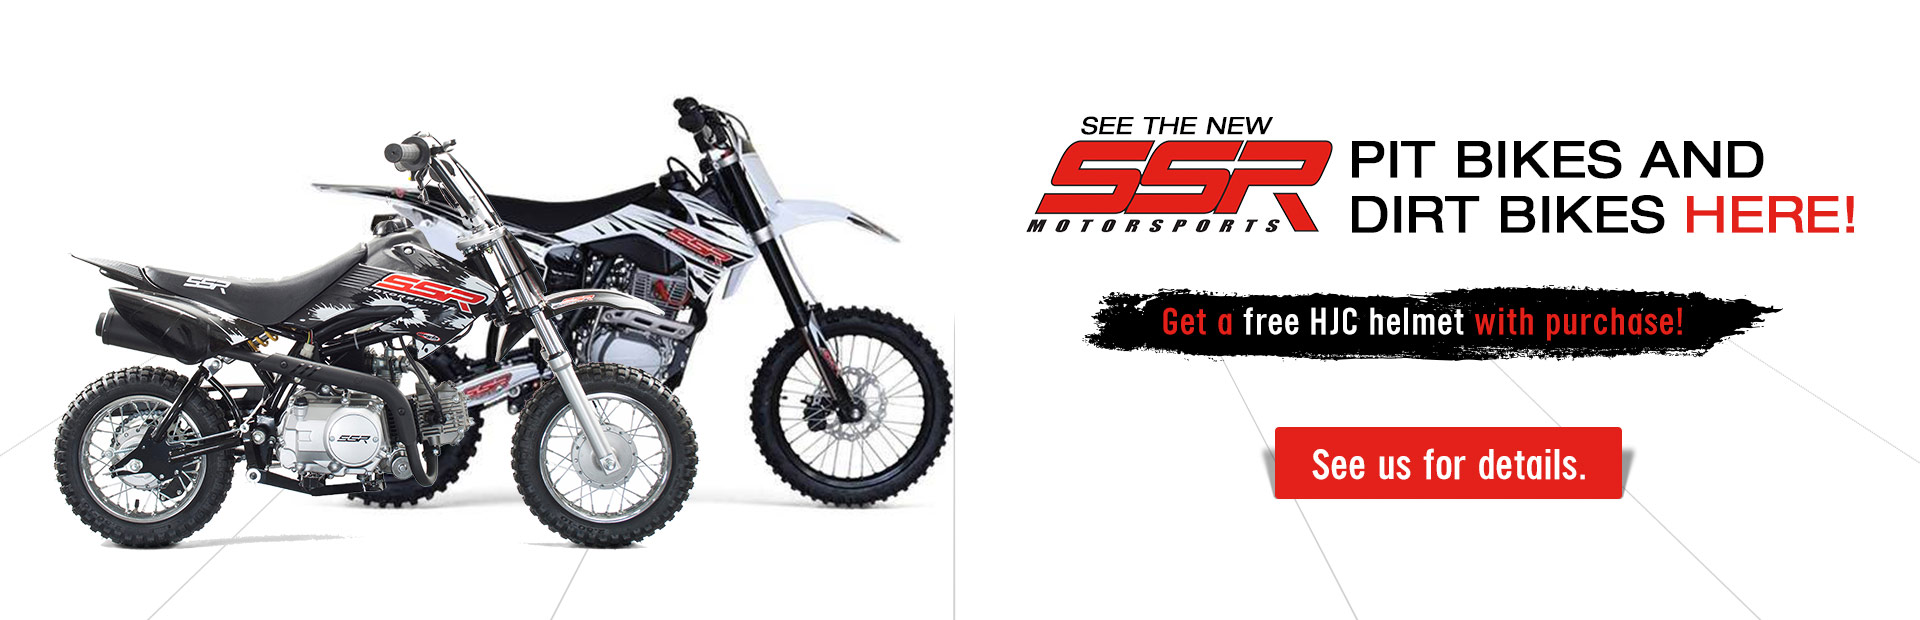 See the new SSR Motorsports pit bikes and dirt bikes here! Get a free HJC helmet with purchase! See us for details.